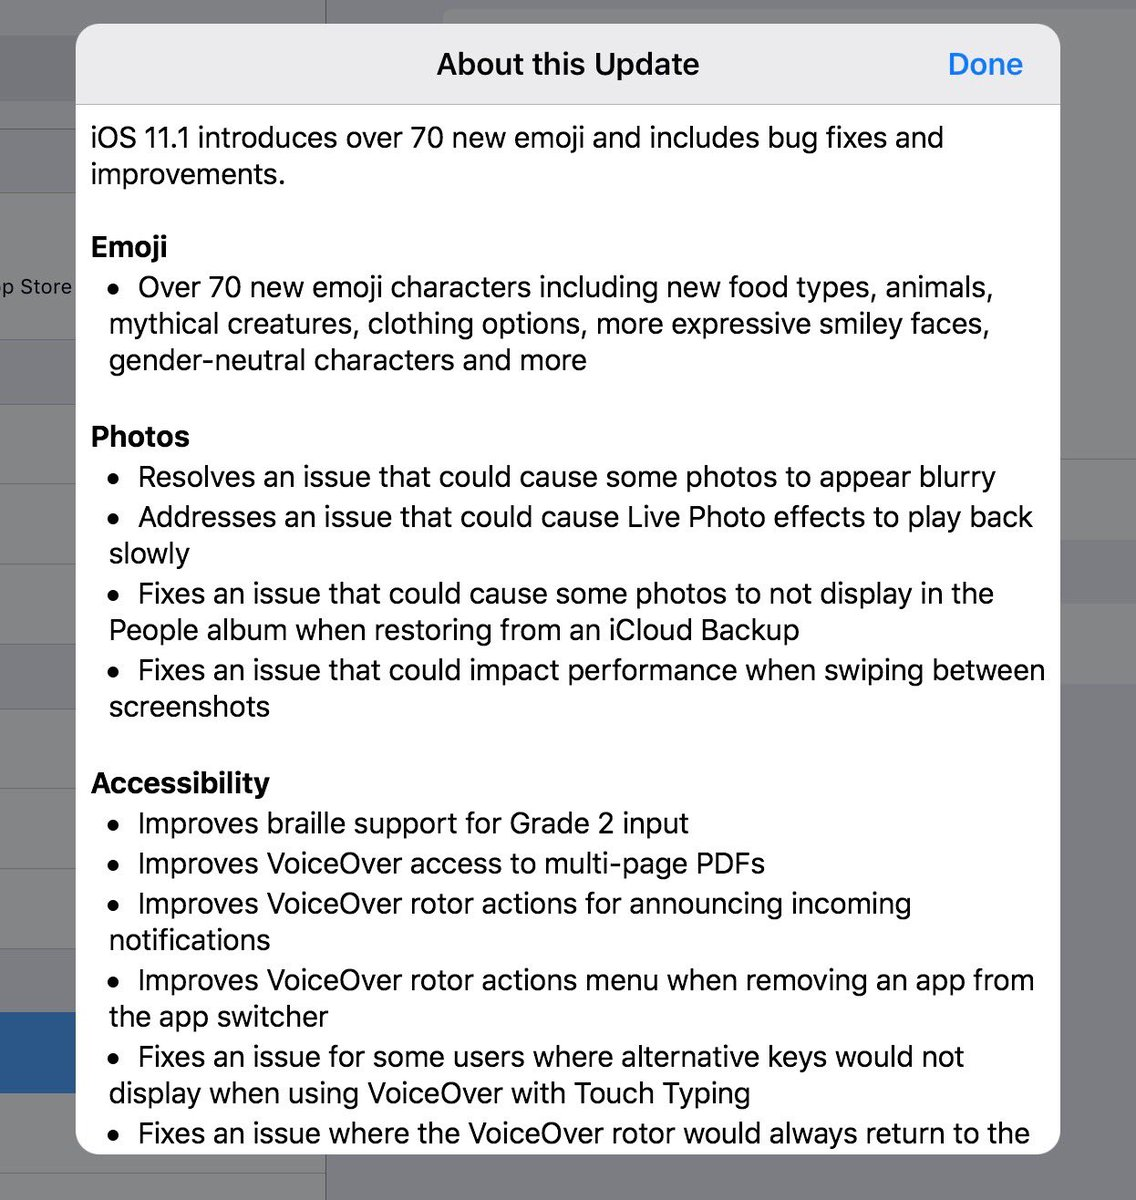 ios 11.1 released for iphone and ipad